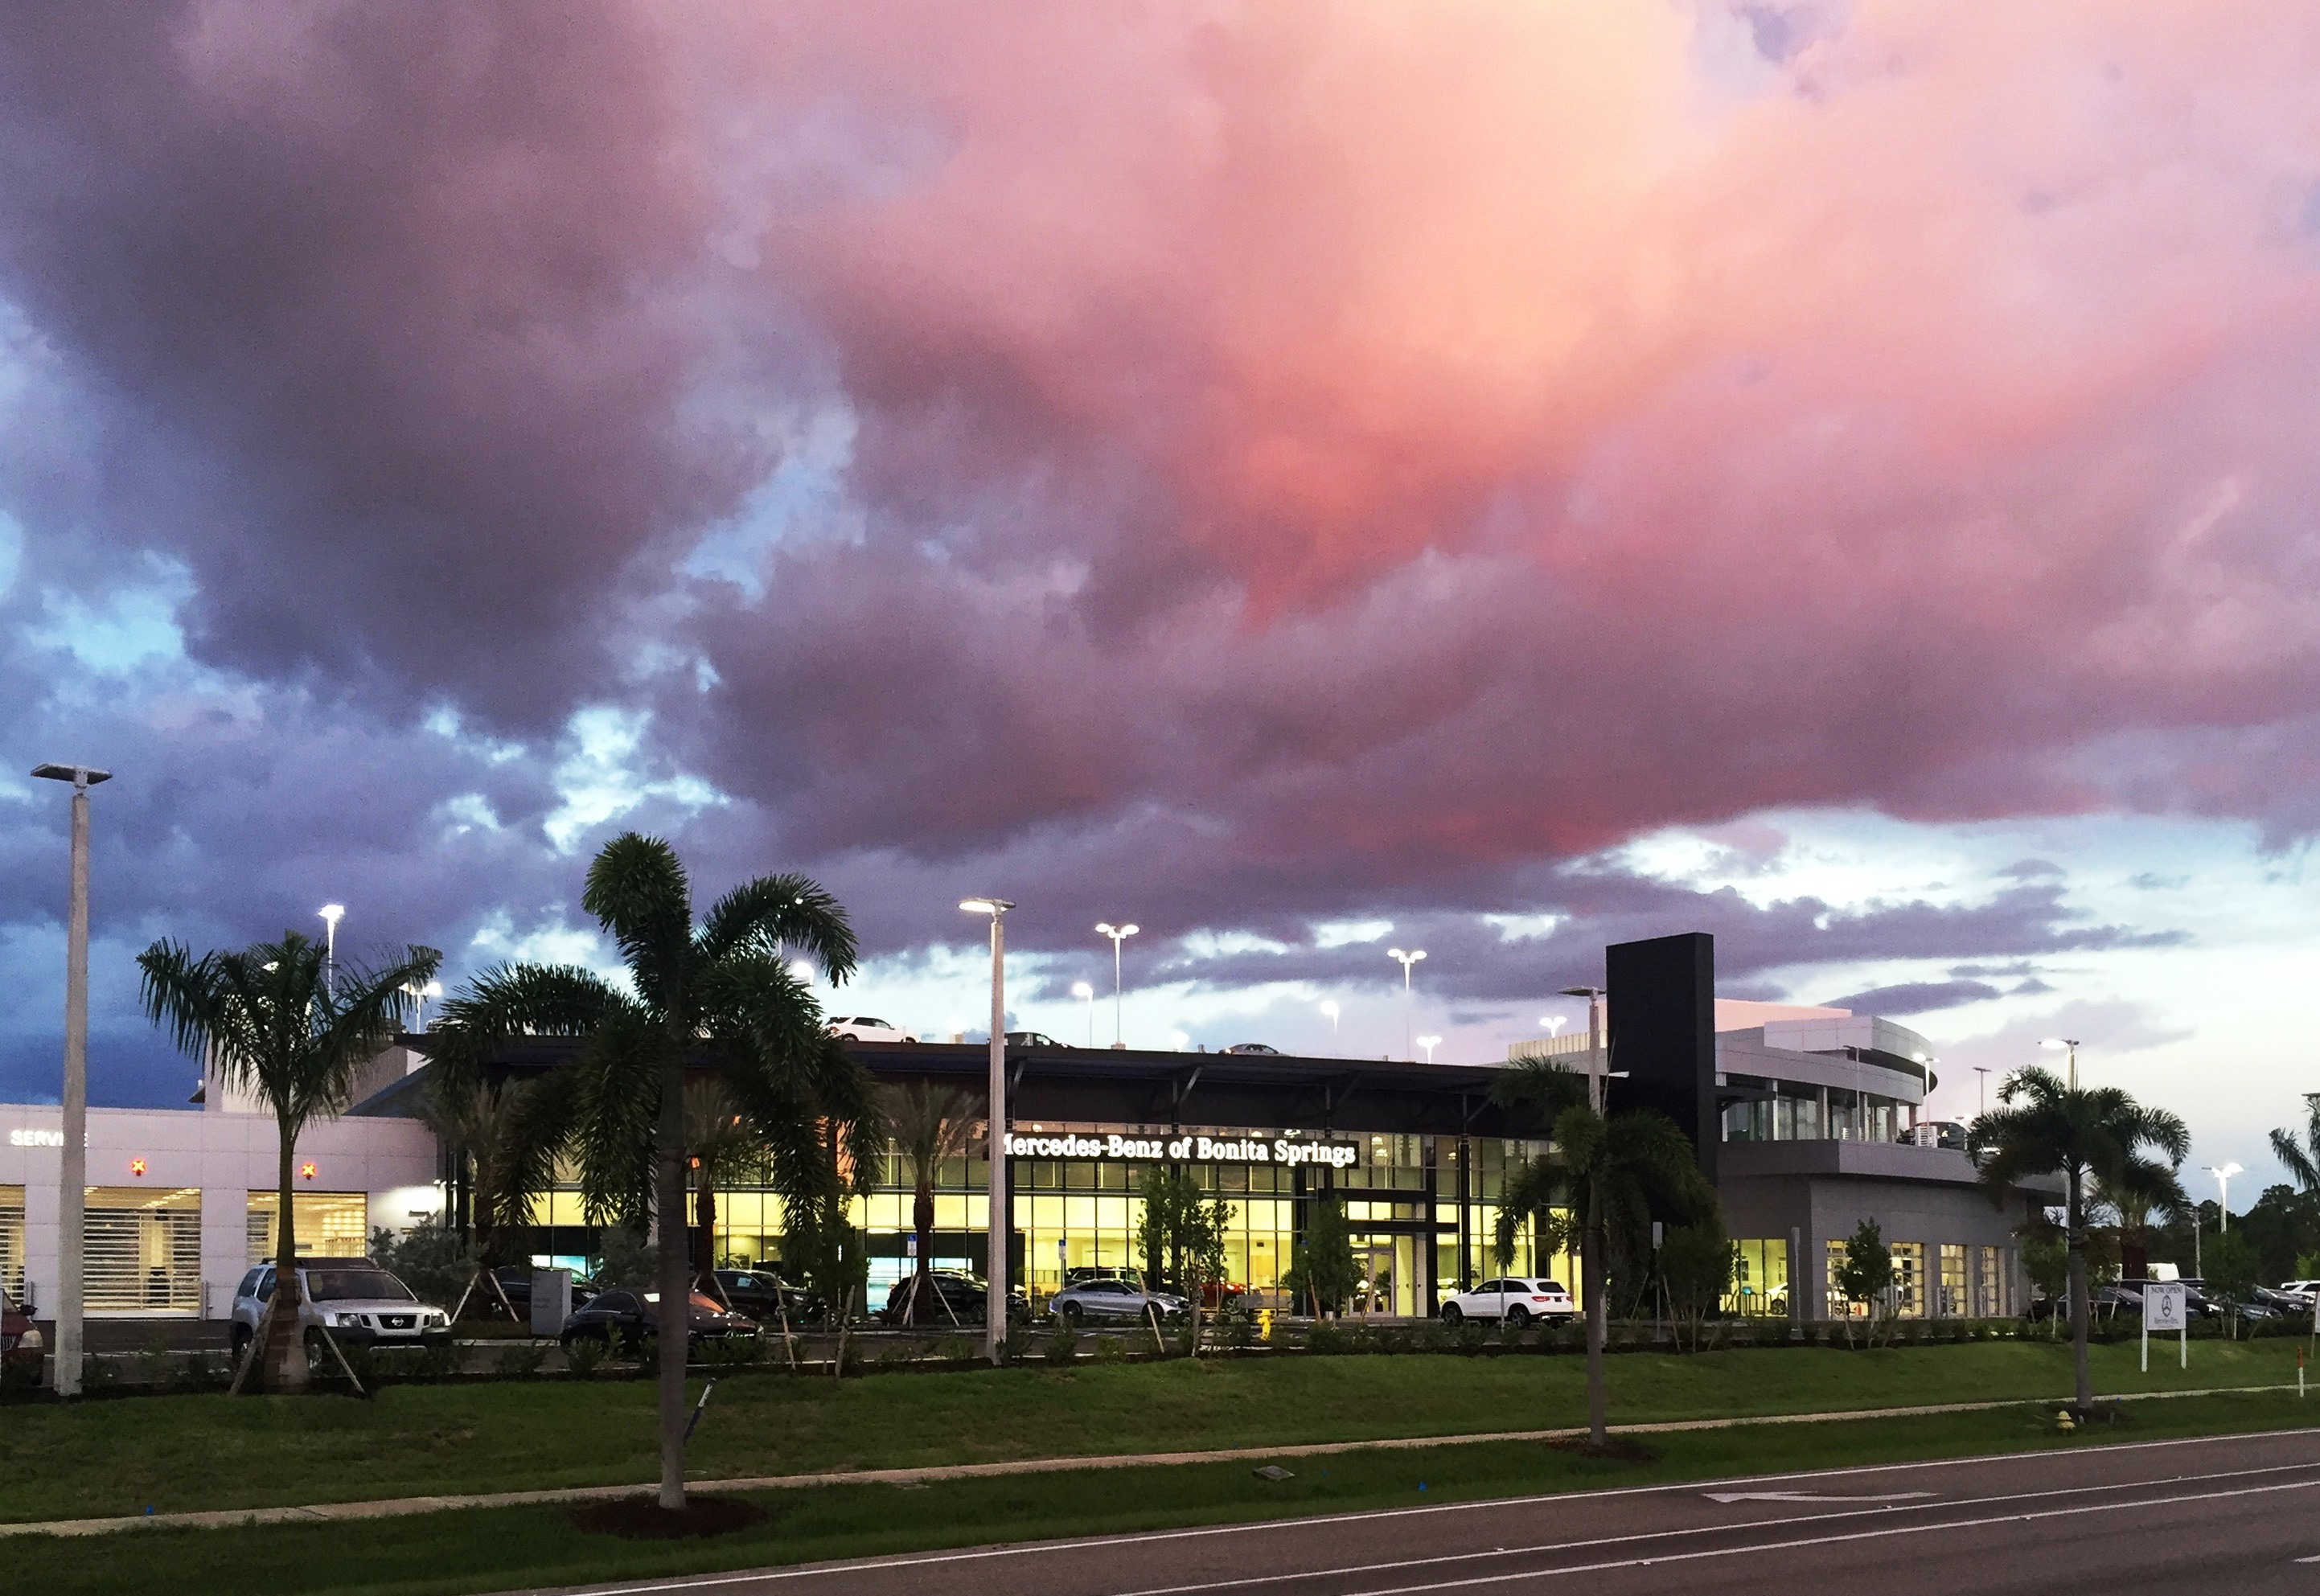 Mercedes benz of bonita springs at 14610 tamiami trail for Mercedes benz bonita springs fl